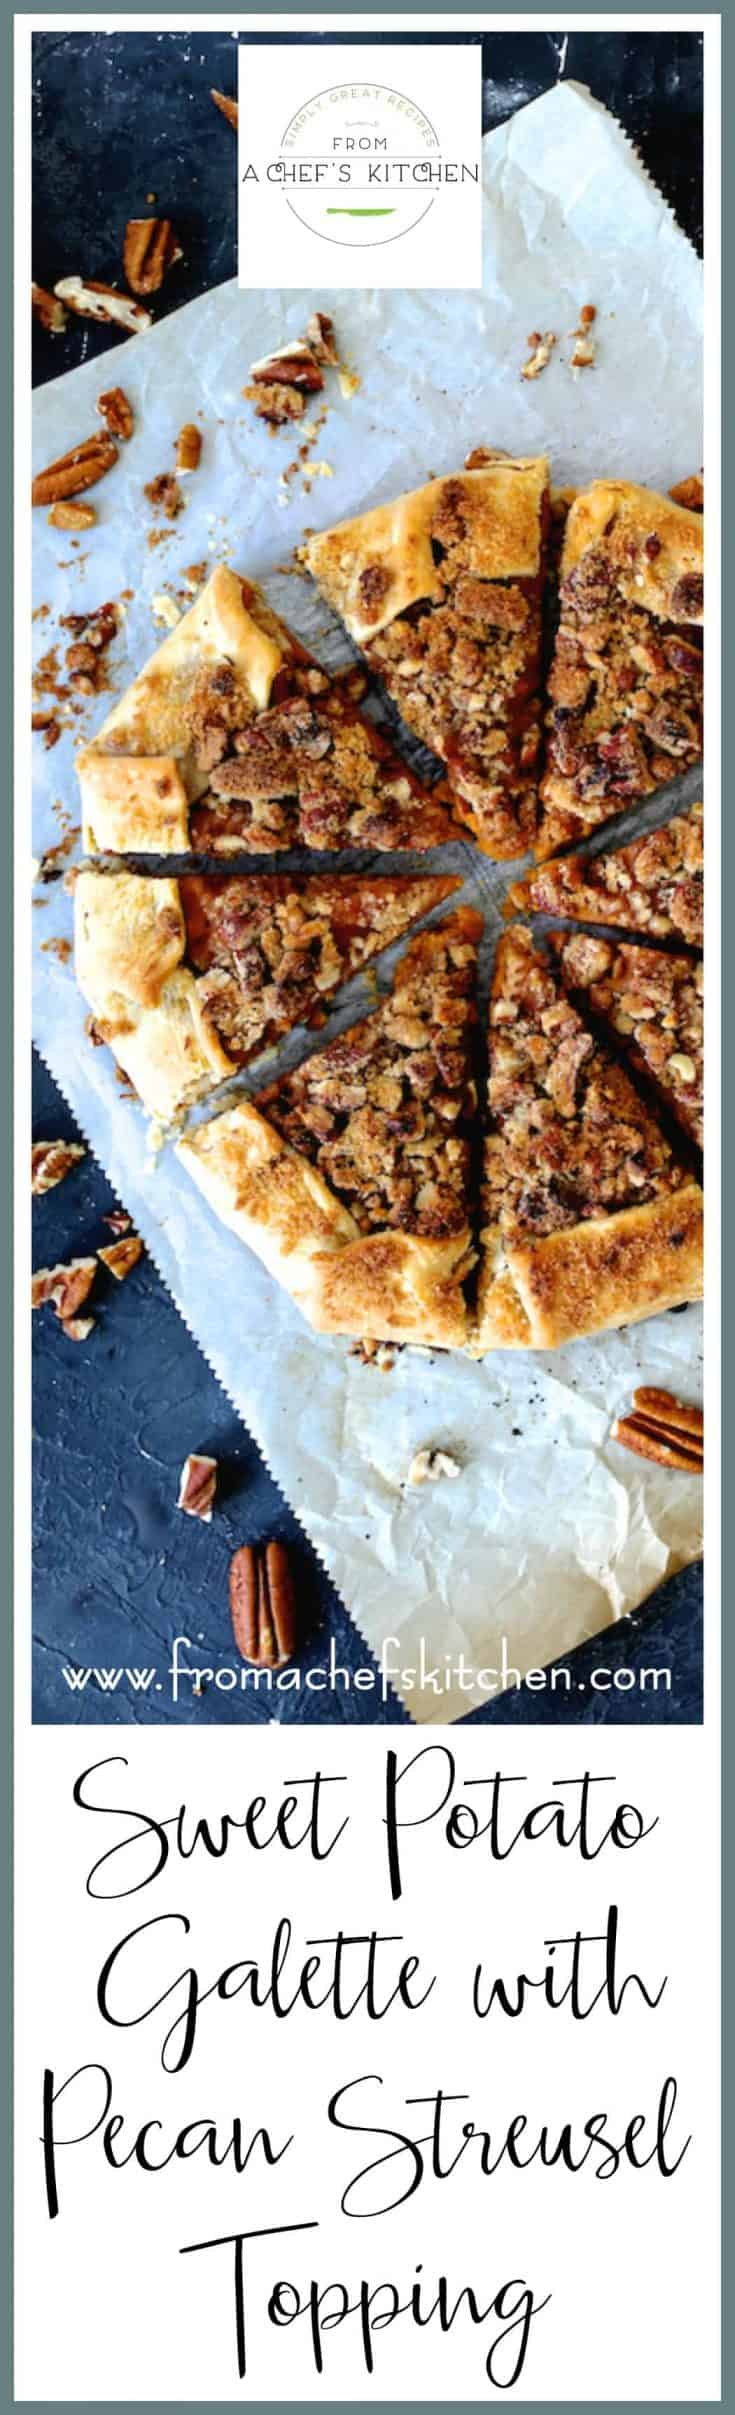 Sweet Potato Galette with Pecan Streusel Topping is the classic sweet potato casserole enveloped in pastry!  #sweetpotato #galette #Thanksgiving #pecan